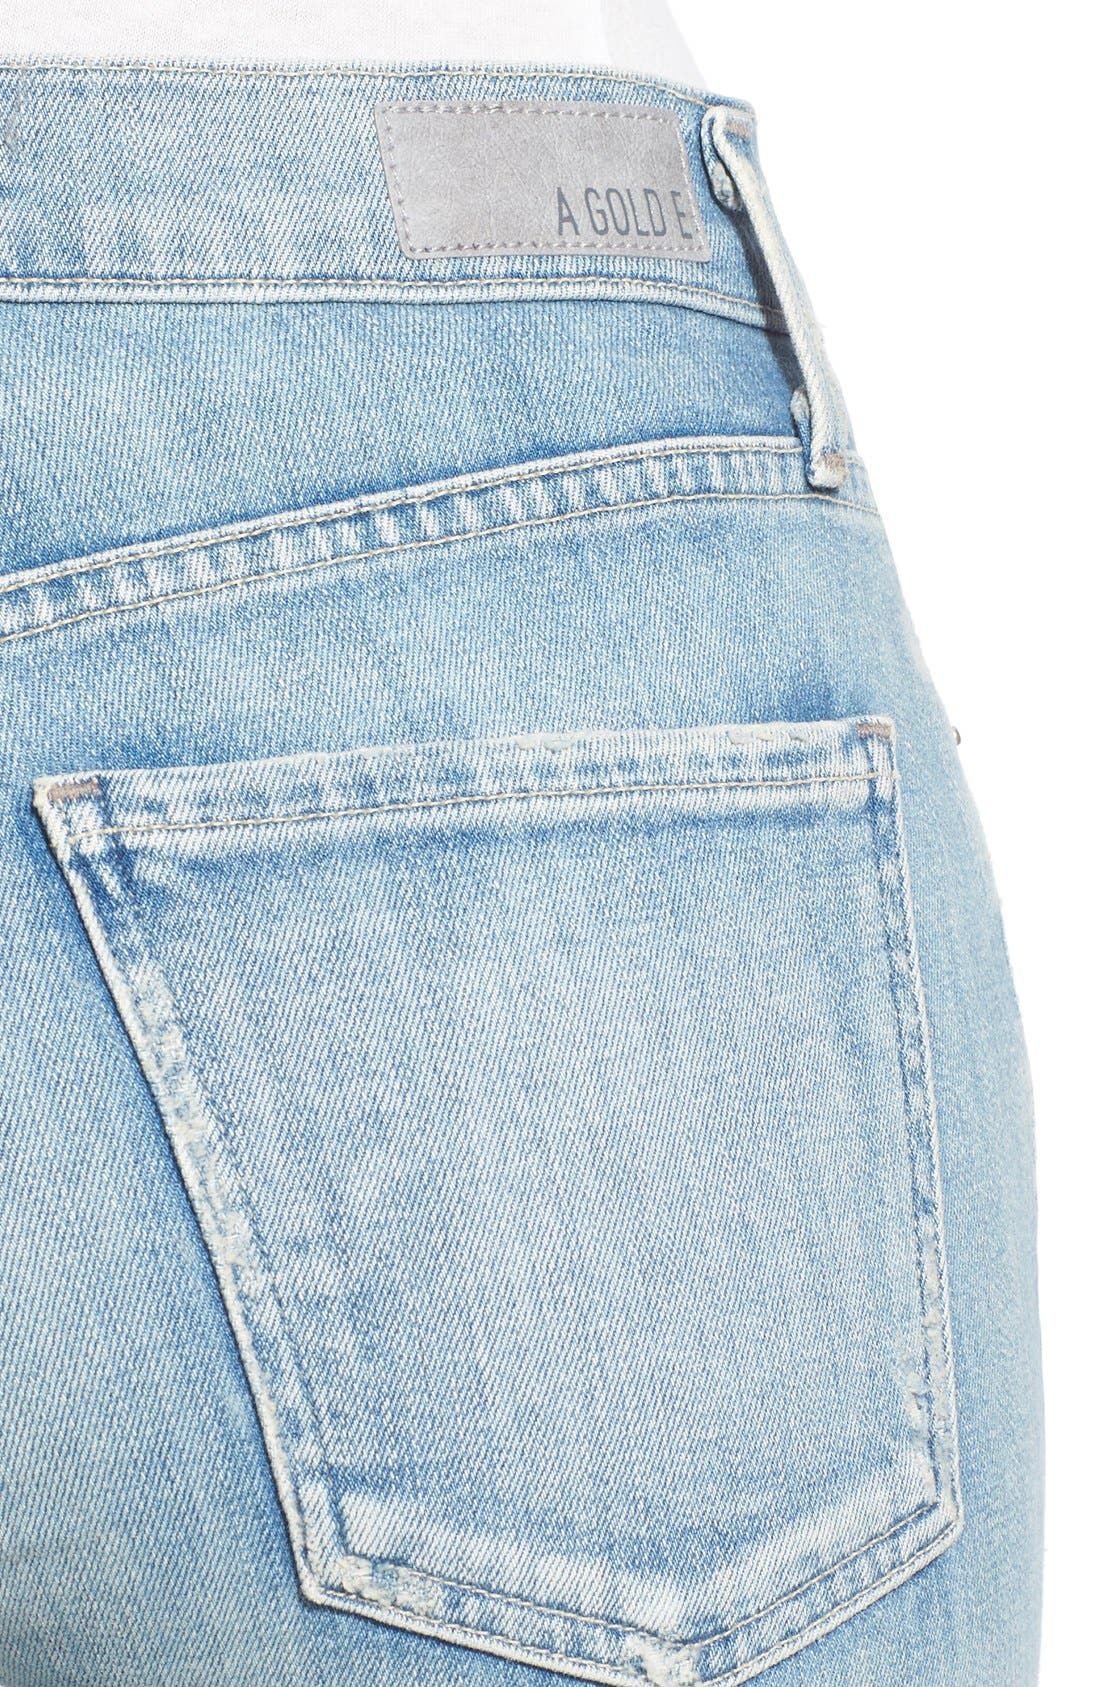 Alternate Image 4  - A Gold E 'Sophie' Crop Skinny Jeans (Blue Lagoon)